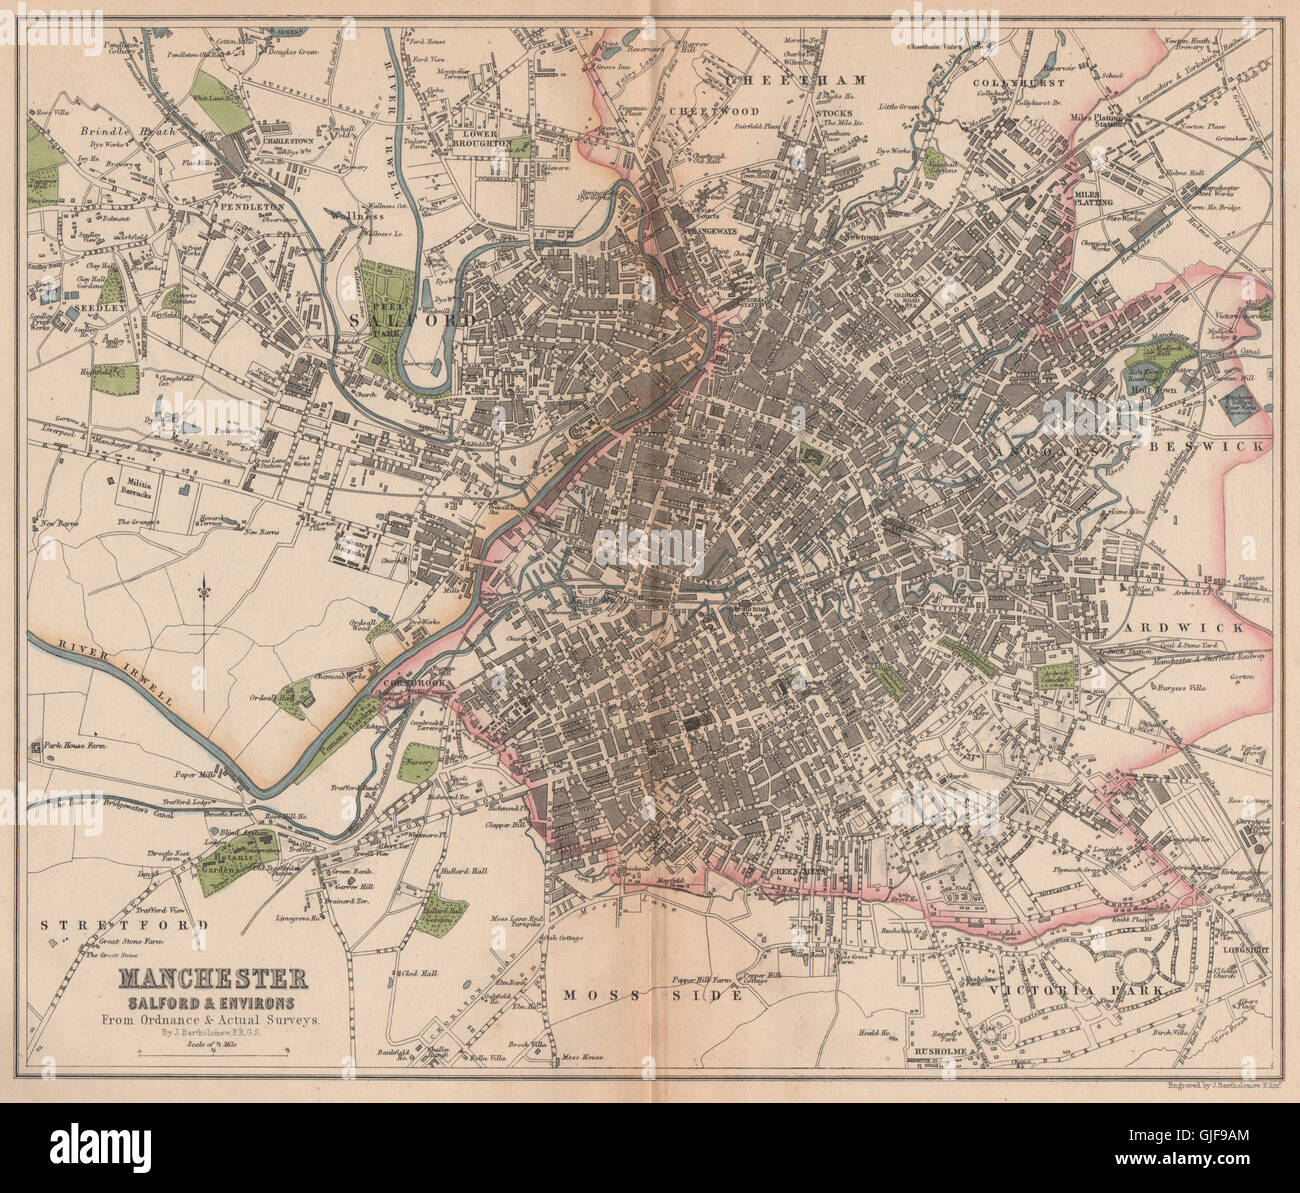 EDINBURGH  antique town//city plan BARTHOLOMEW 1904 old map chart